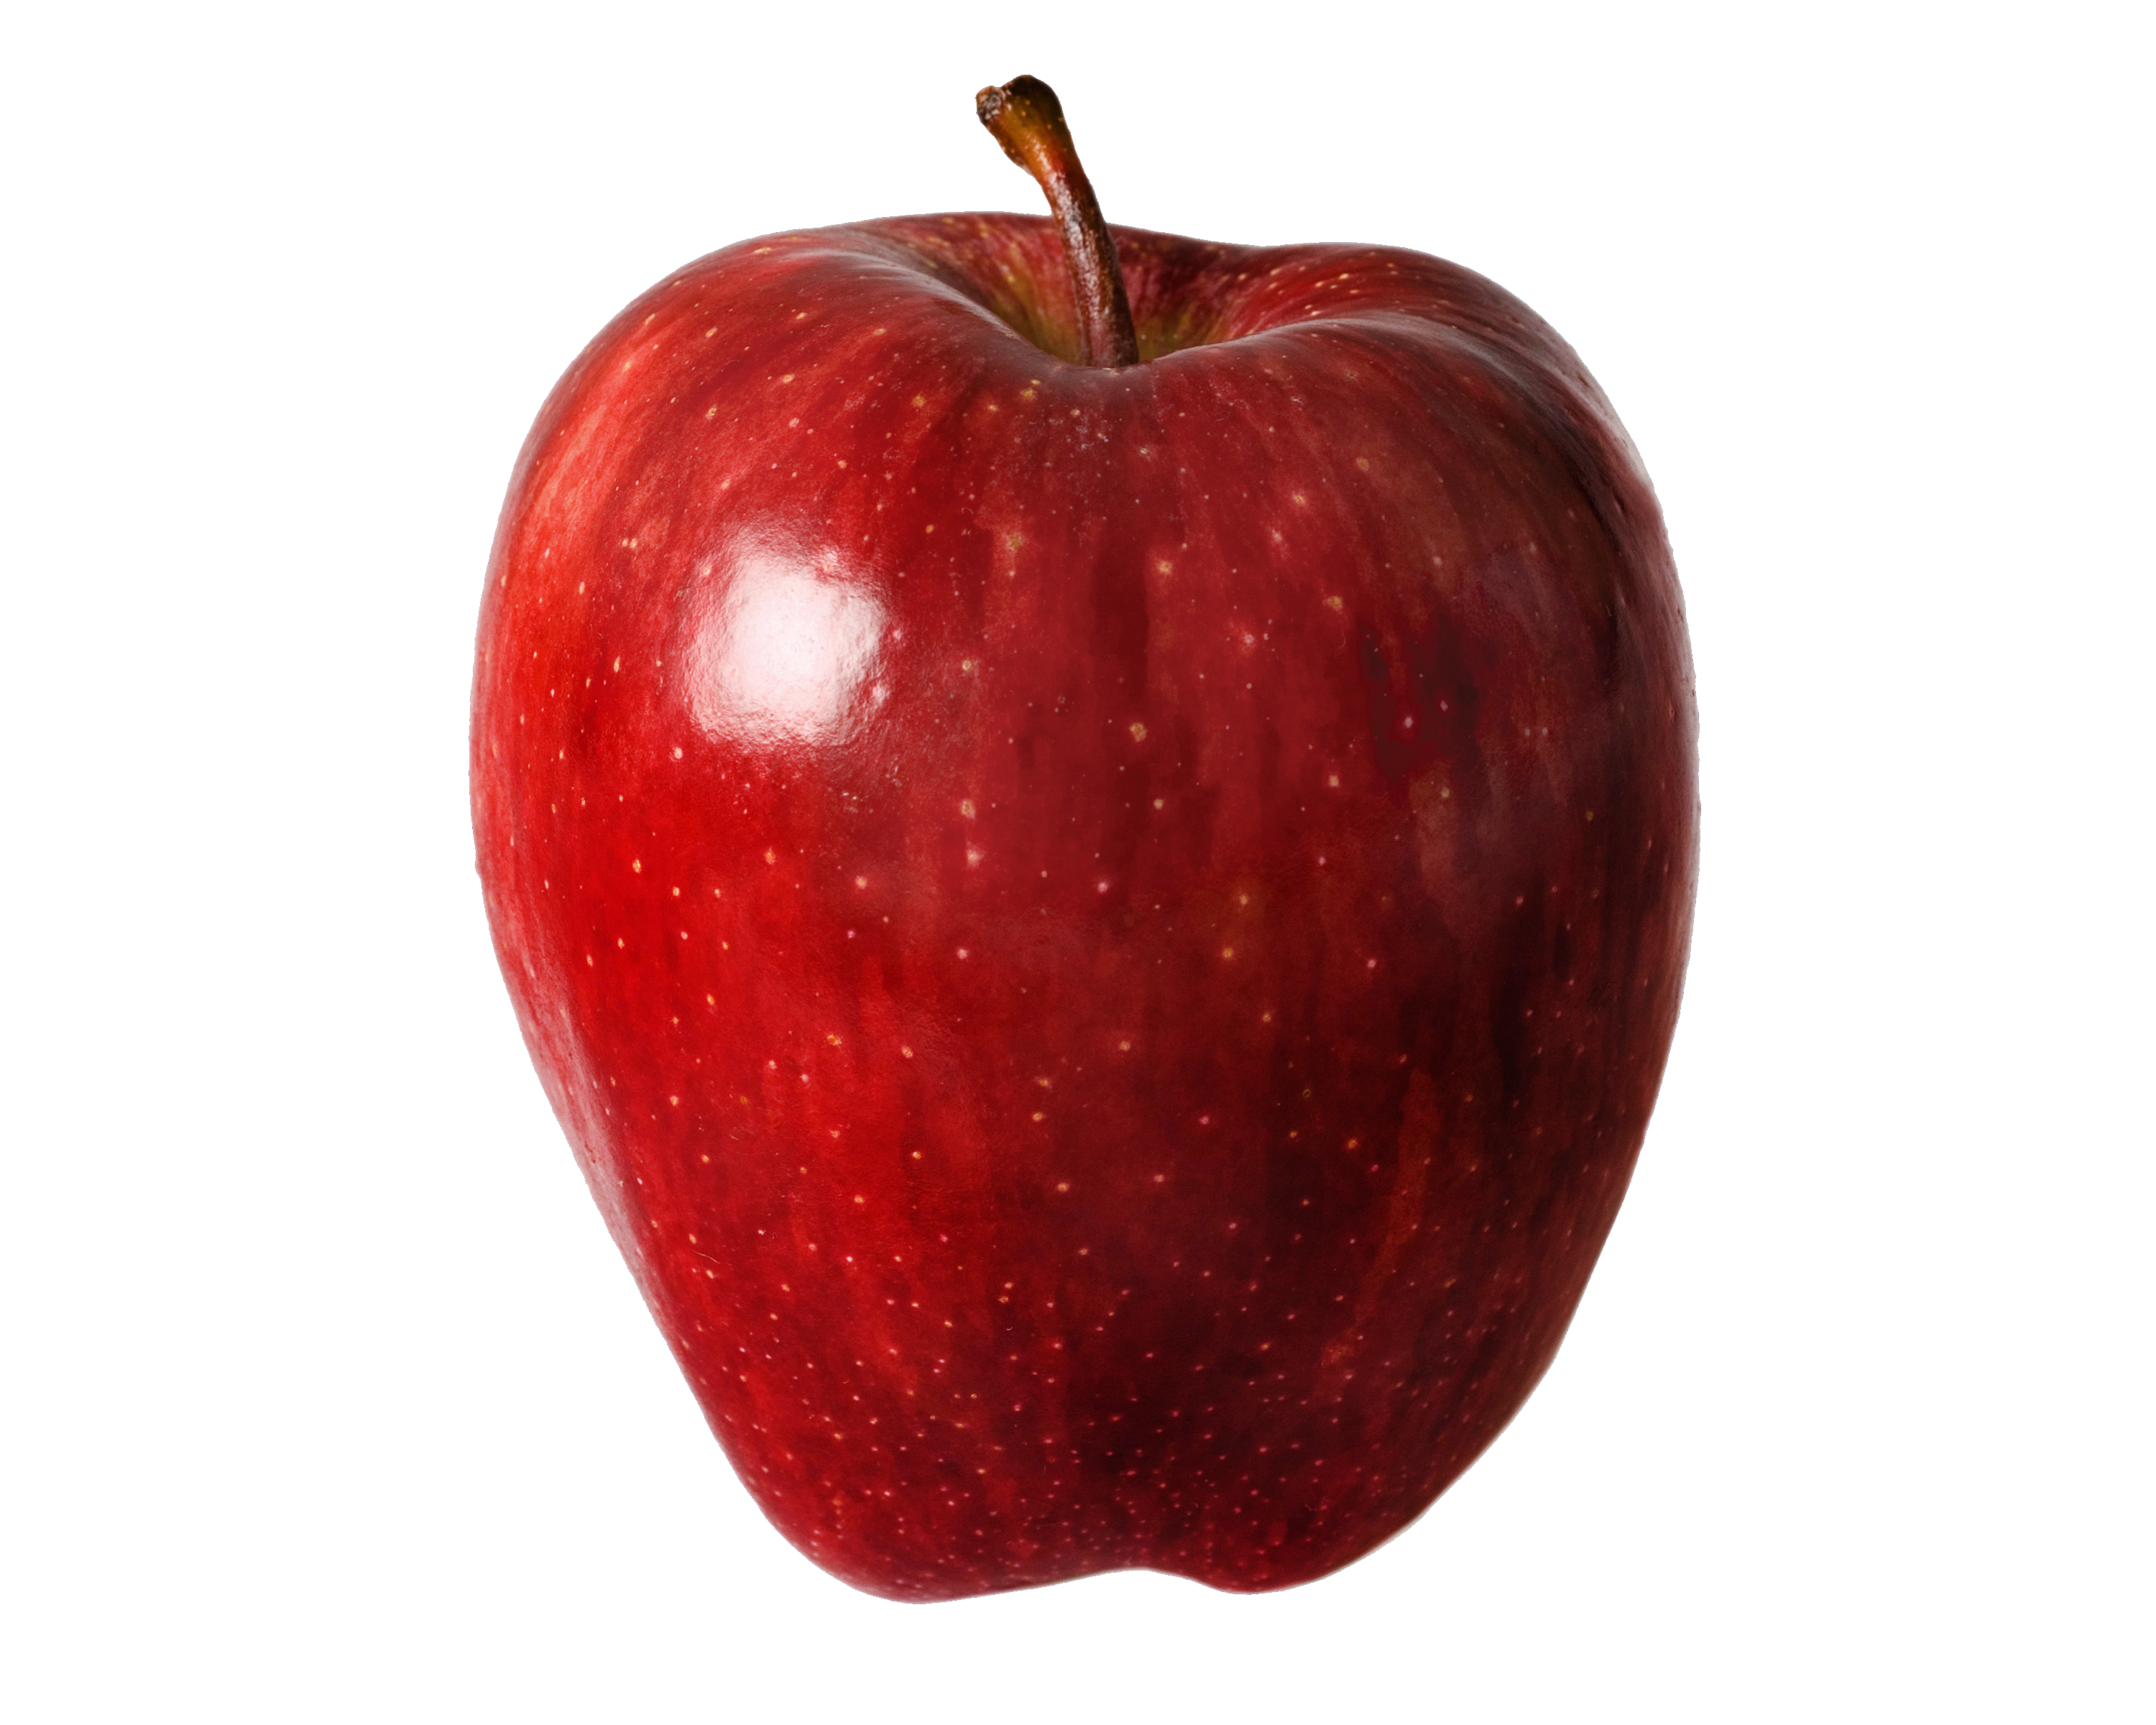 Apple PNG images free download, apple PNG.